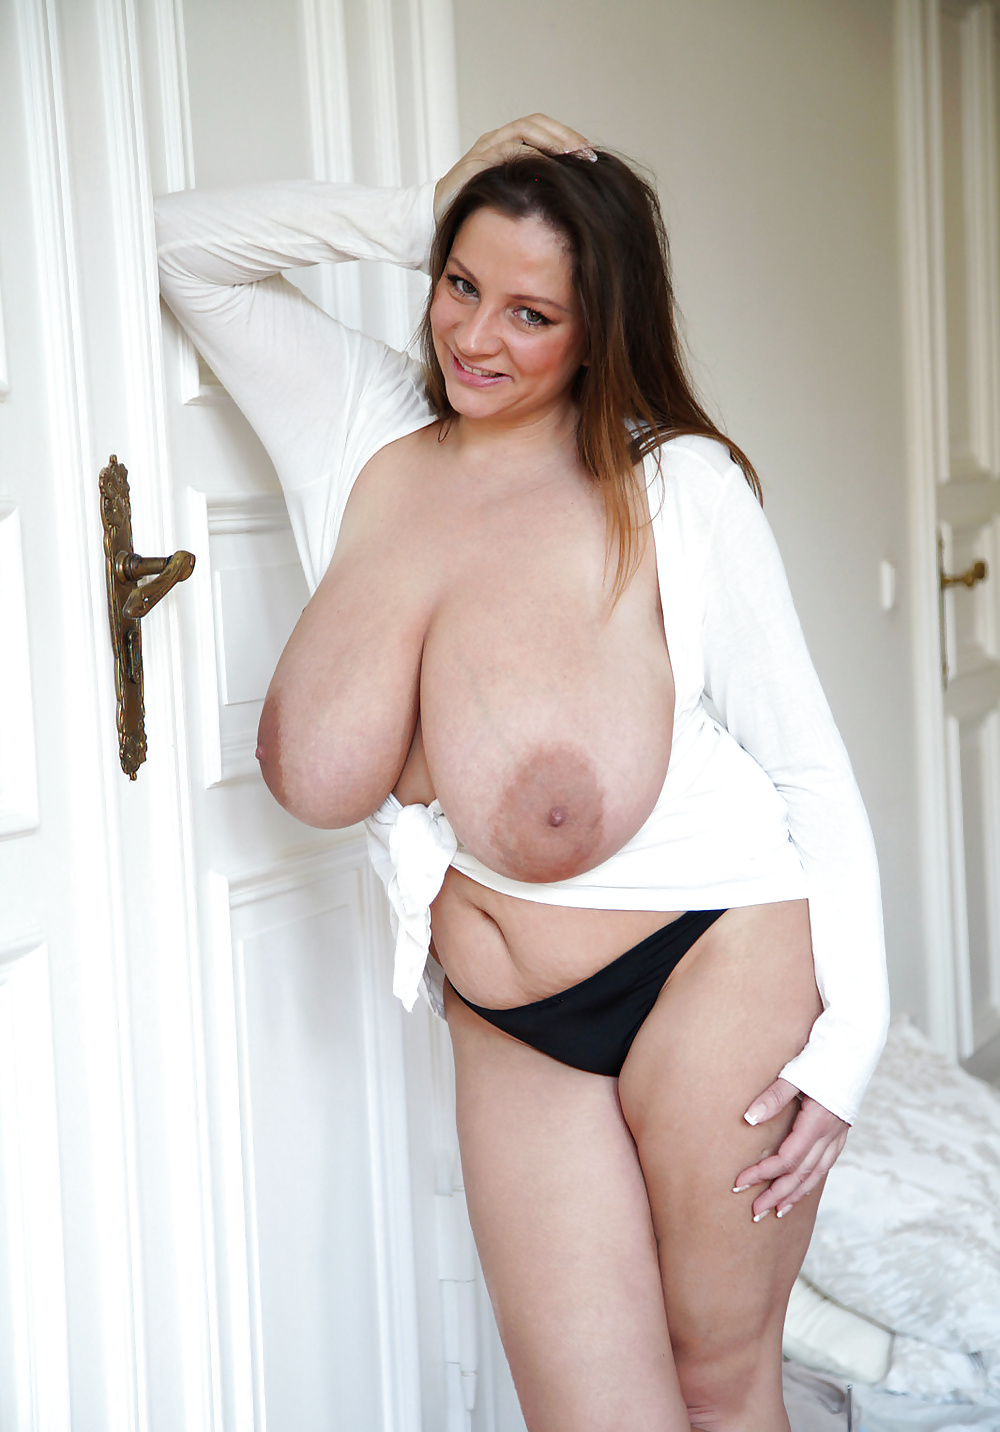 Nadine jansen fat naked 14